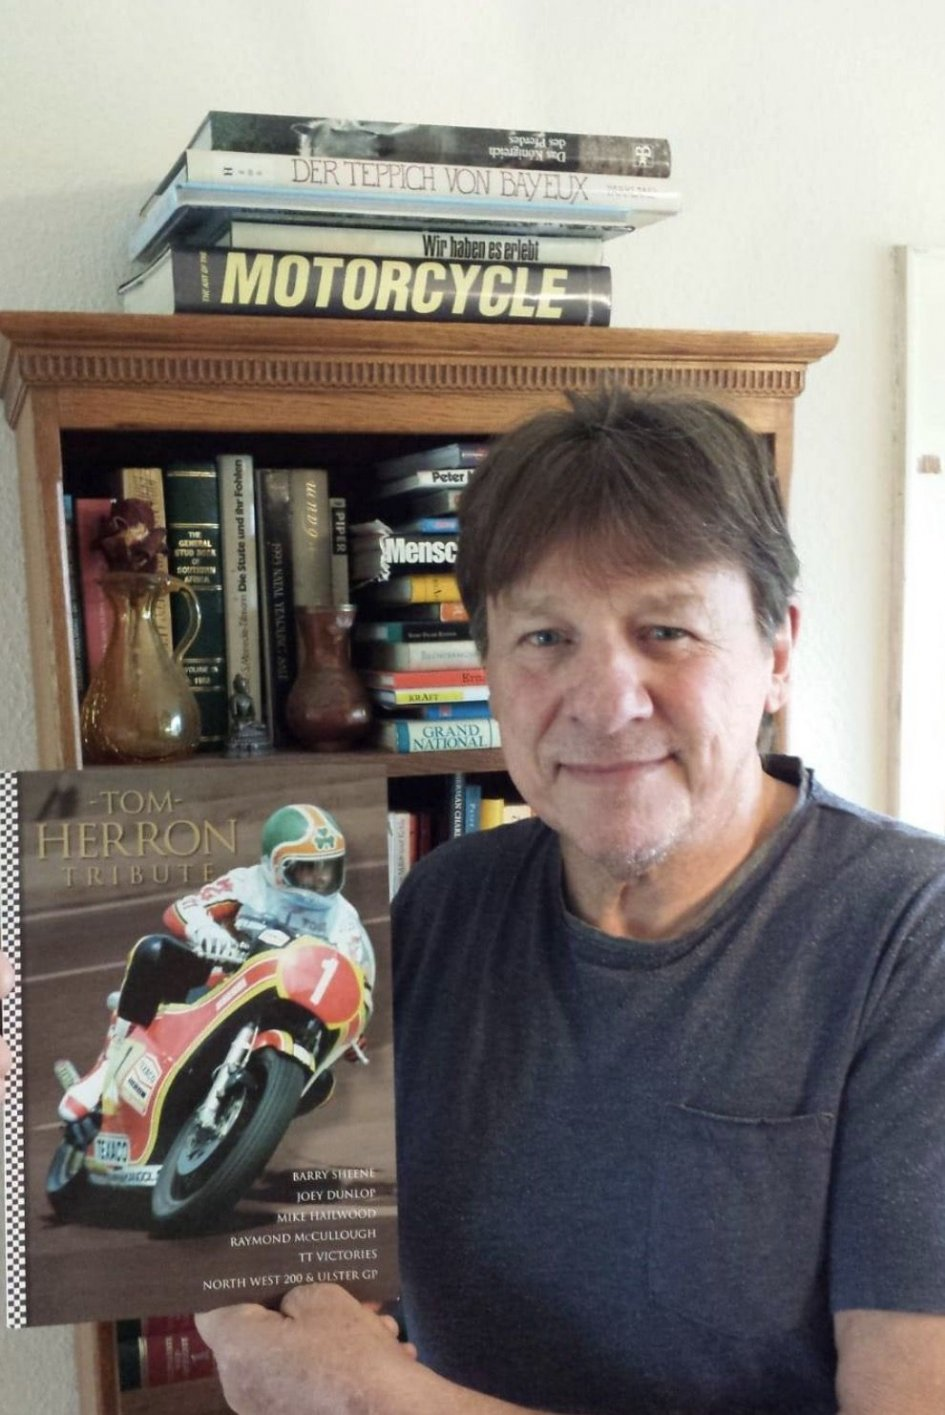 News: Tom Herron: an extraordinary man. The book